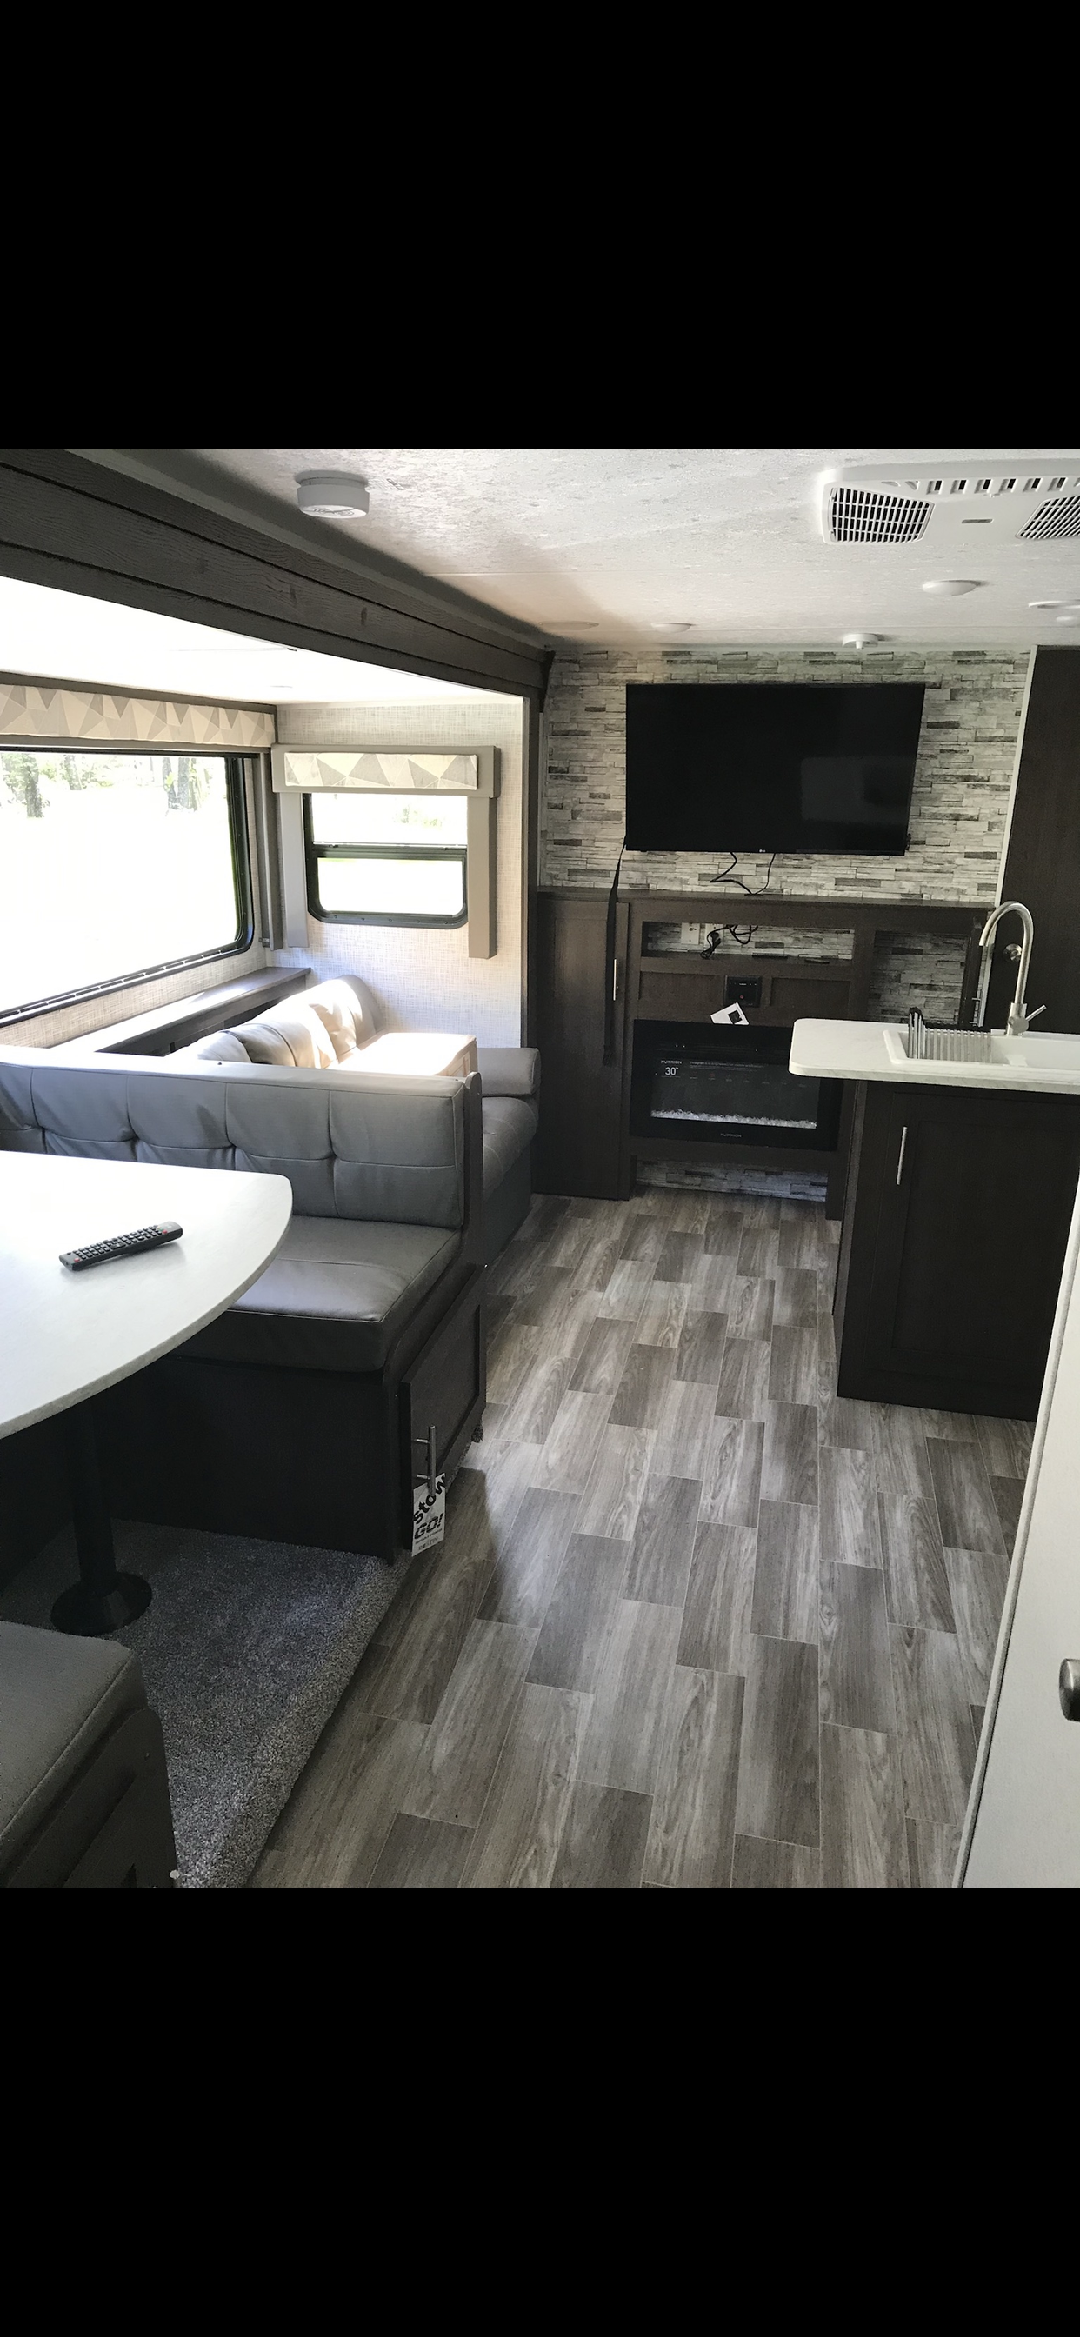 Couch pulls out  and the table folds down to beds (although best for only shorter people :) Gas fireplace for colder weather! TV & VCR for rain! . Forest River Wildwood xlite 2019